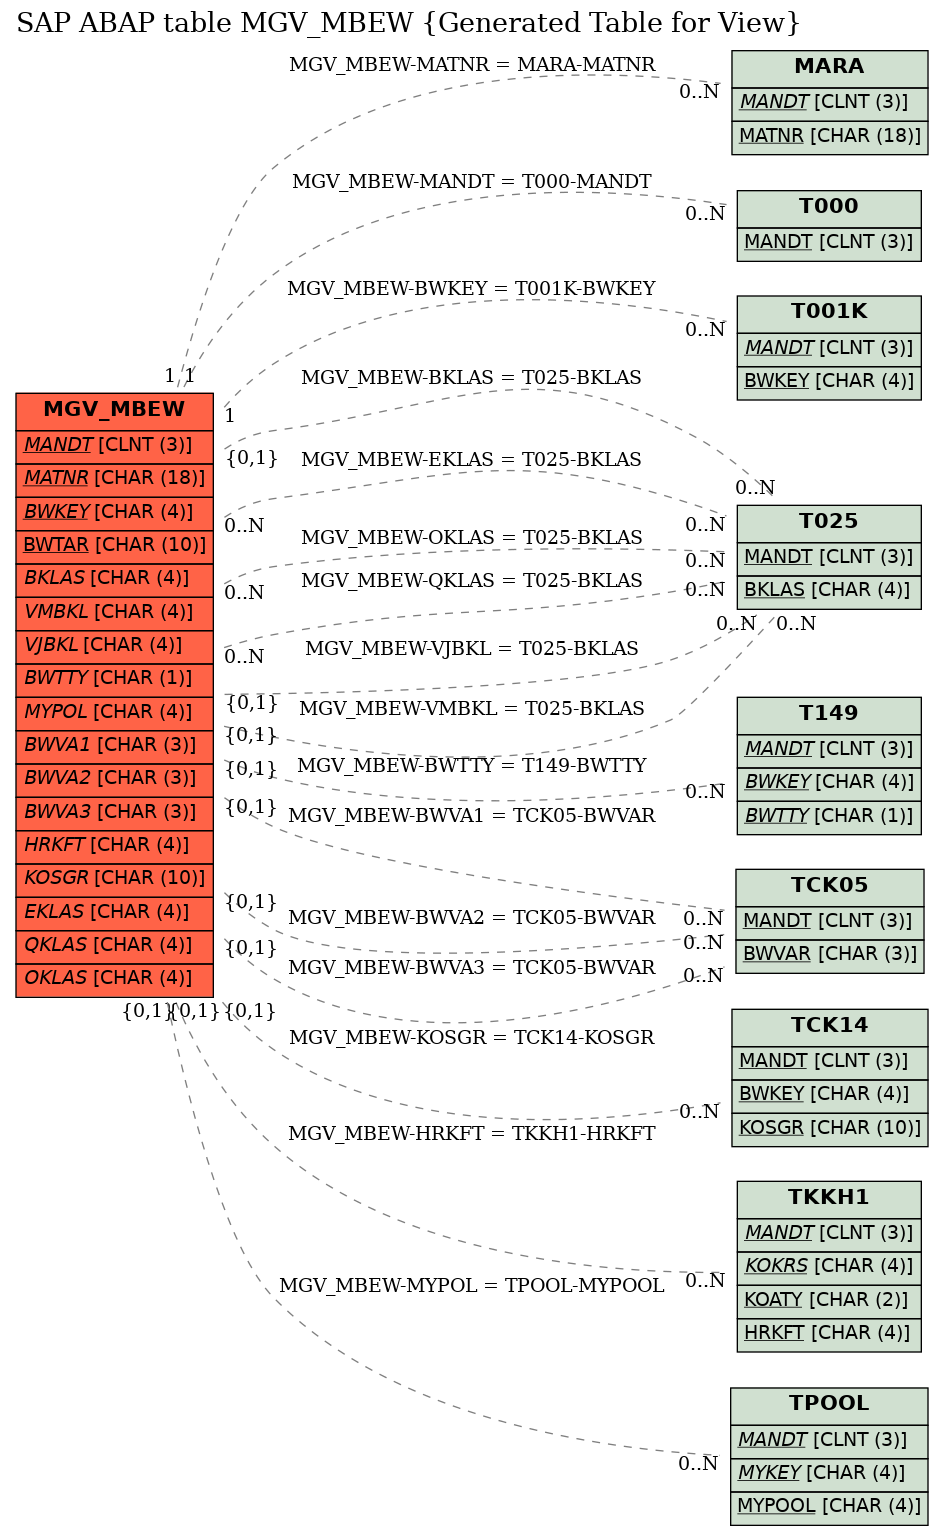 E-R Diagram for table MGV_MBEW (Generated Table for View)